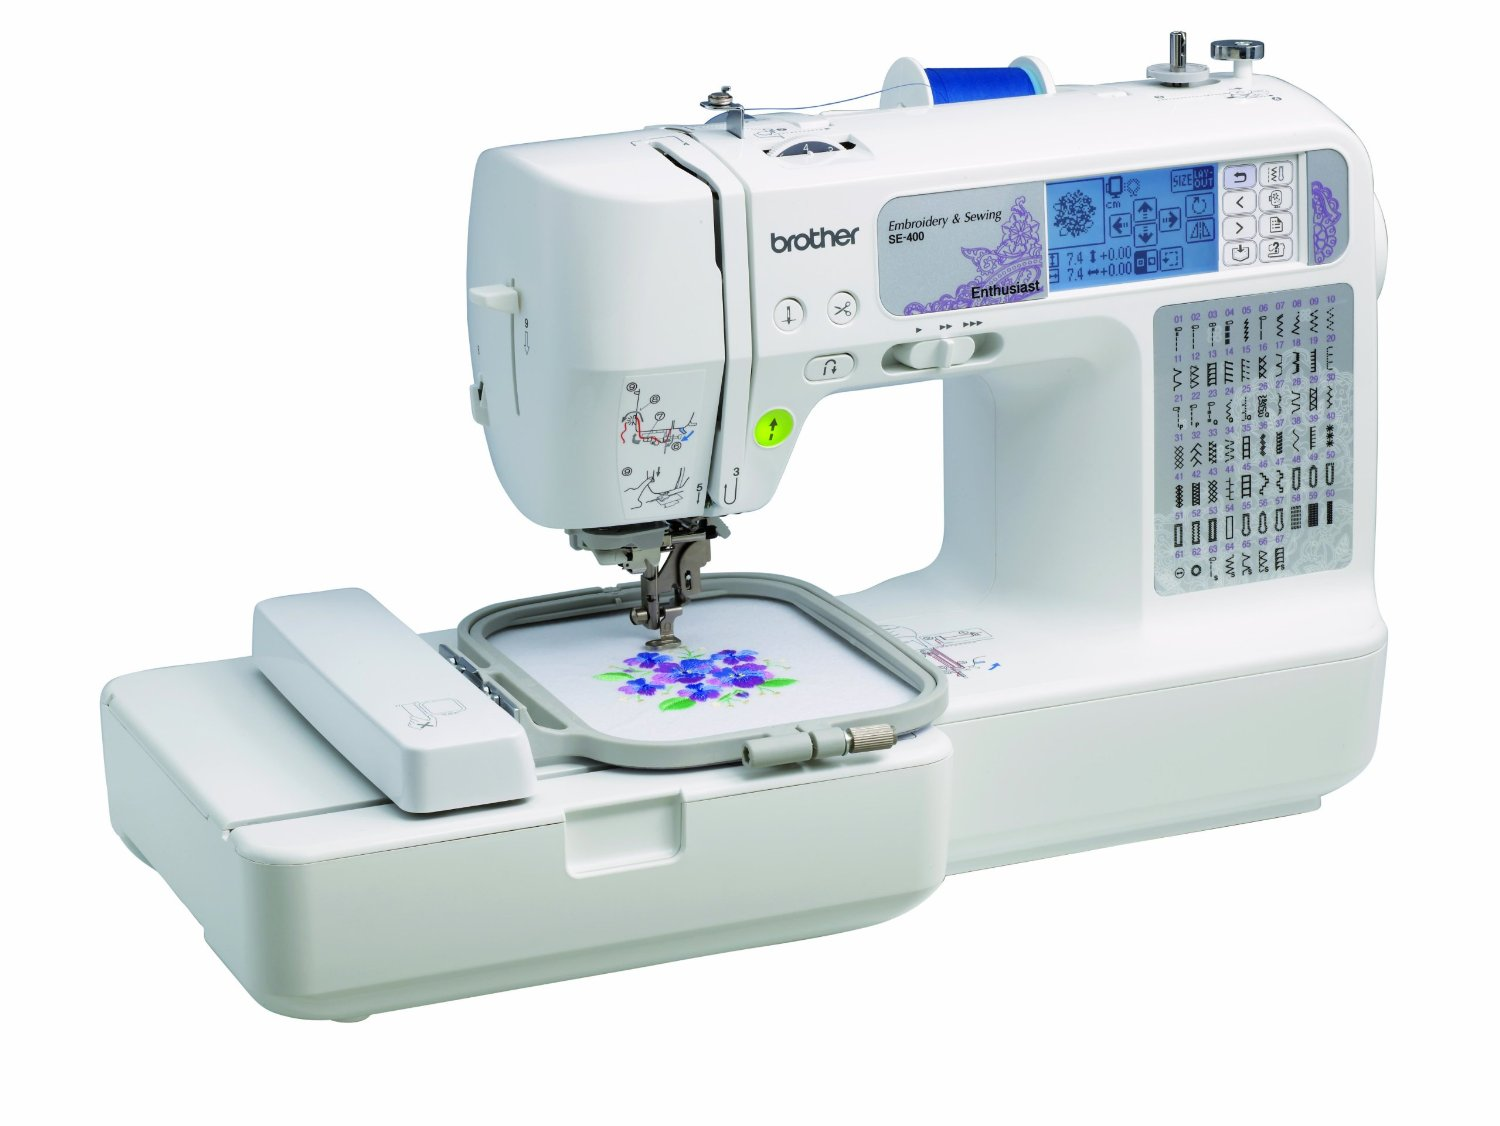 Sewing & embroidery machine - gift ideas for modern moms from And Next Comes L